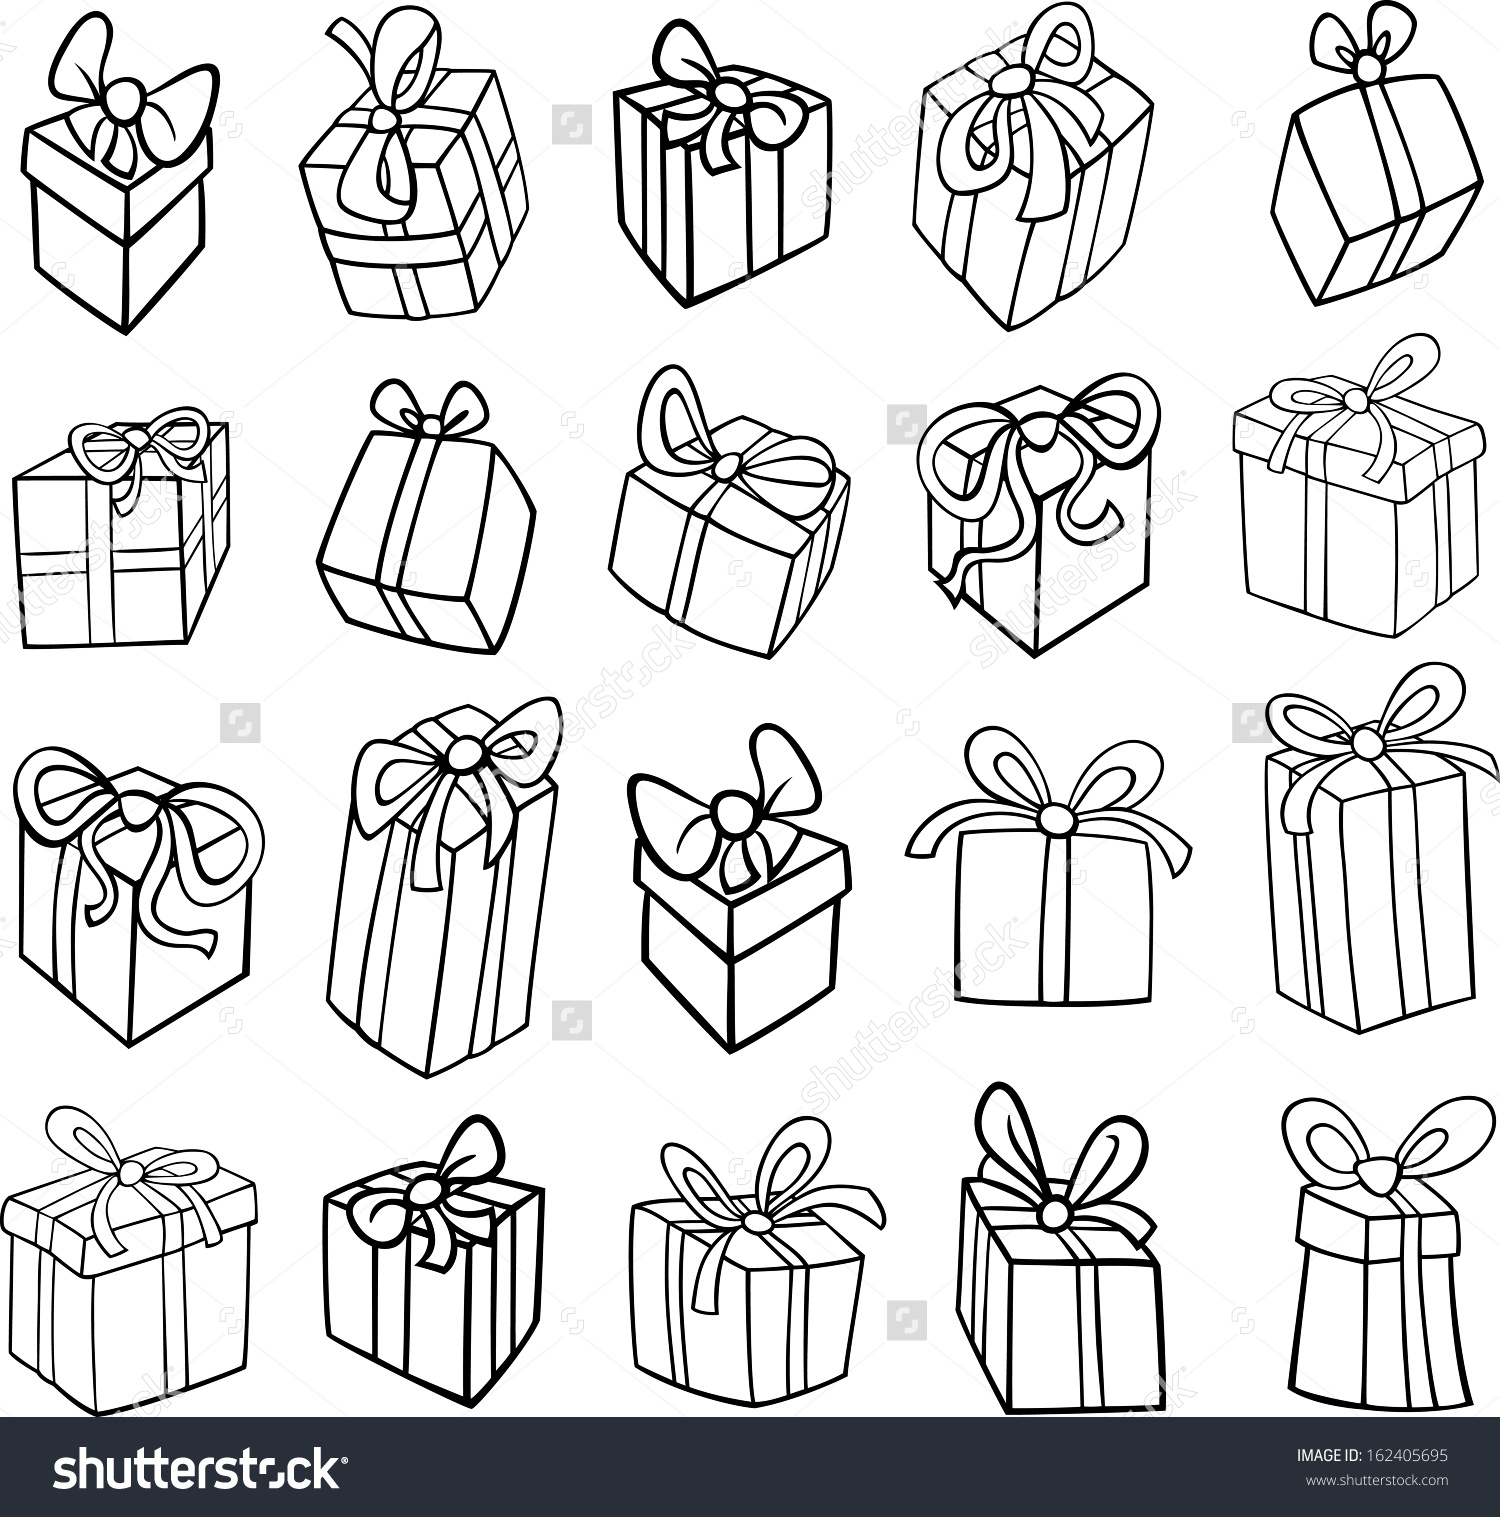 christmas presents clipart black and white - Clipground